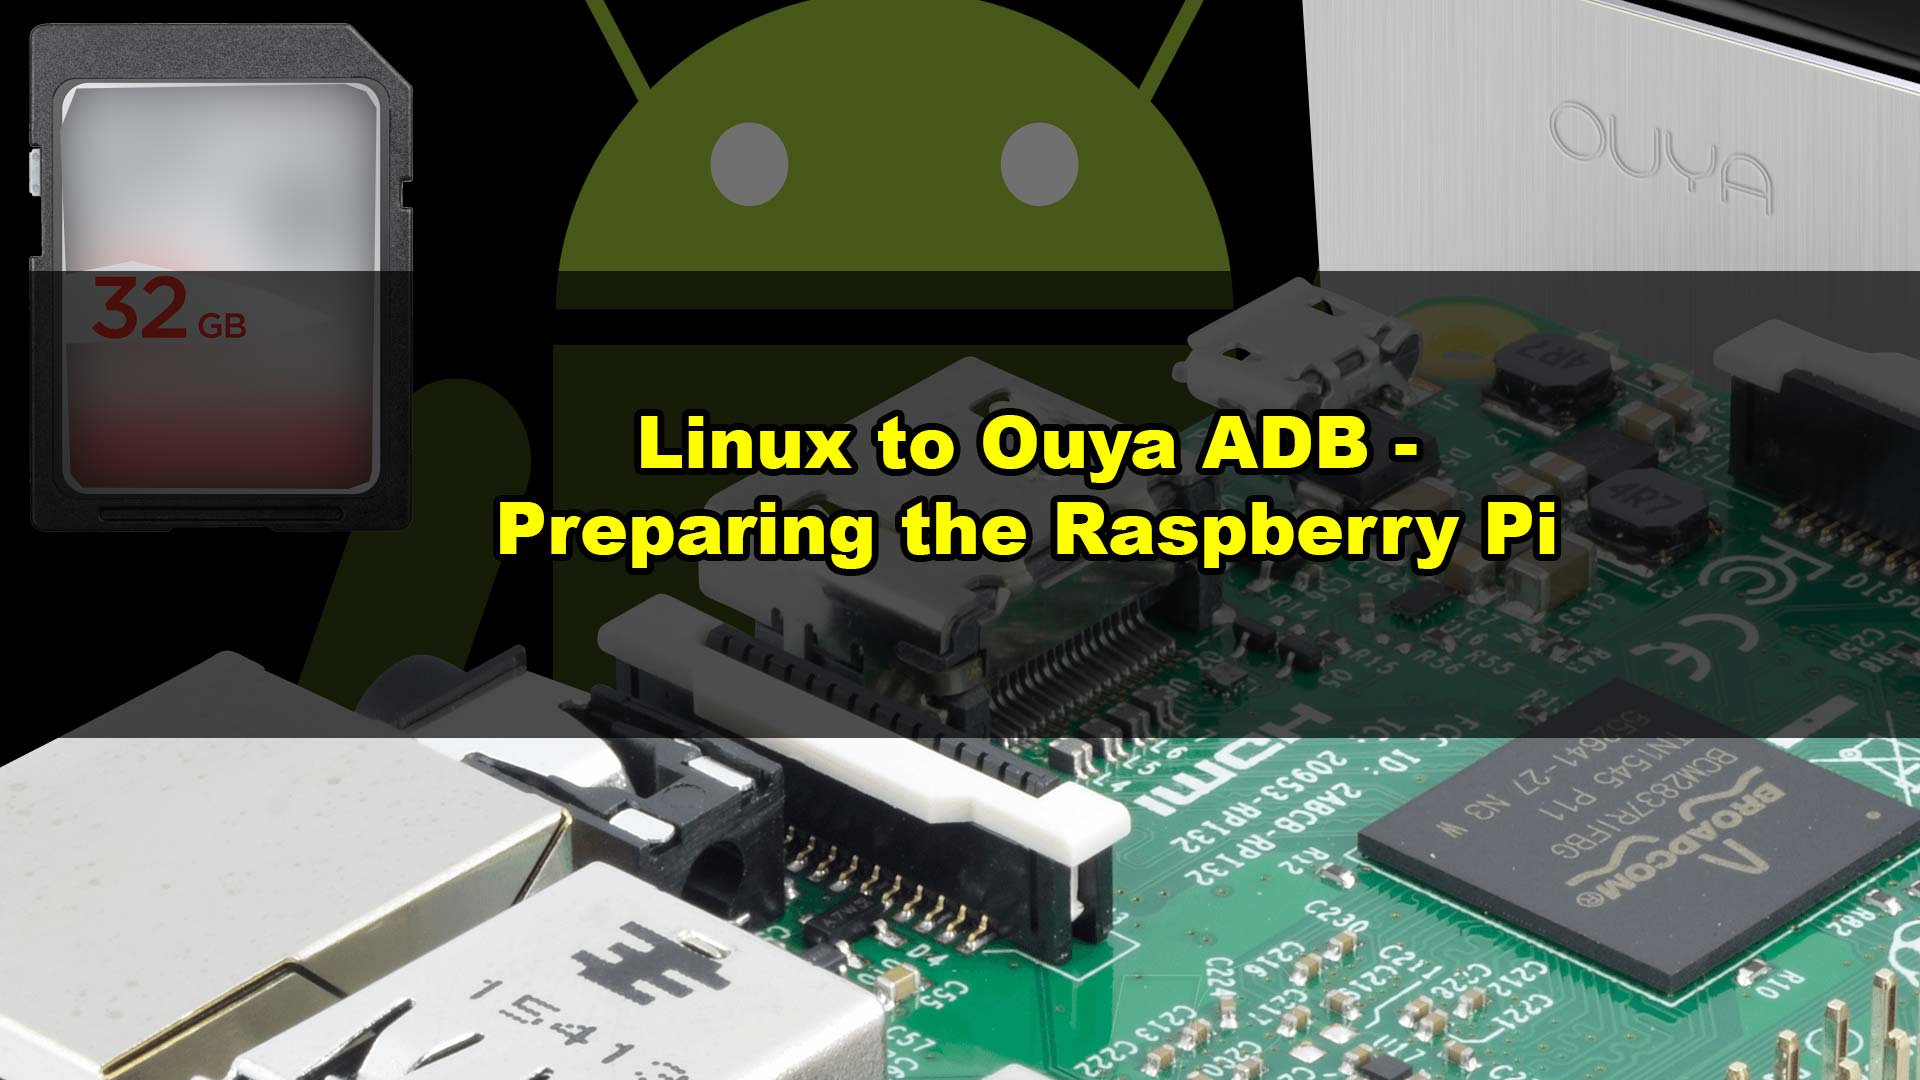 Linux-to-ouya-ADB-preparing-Pi